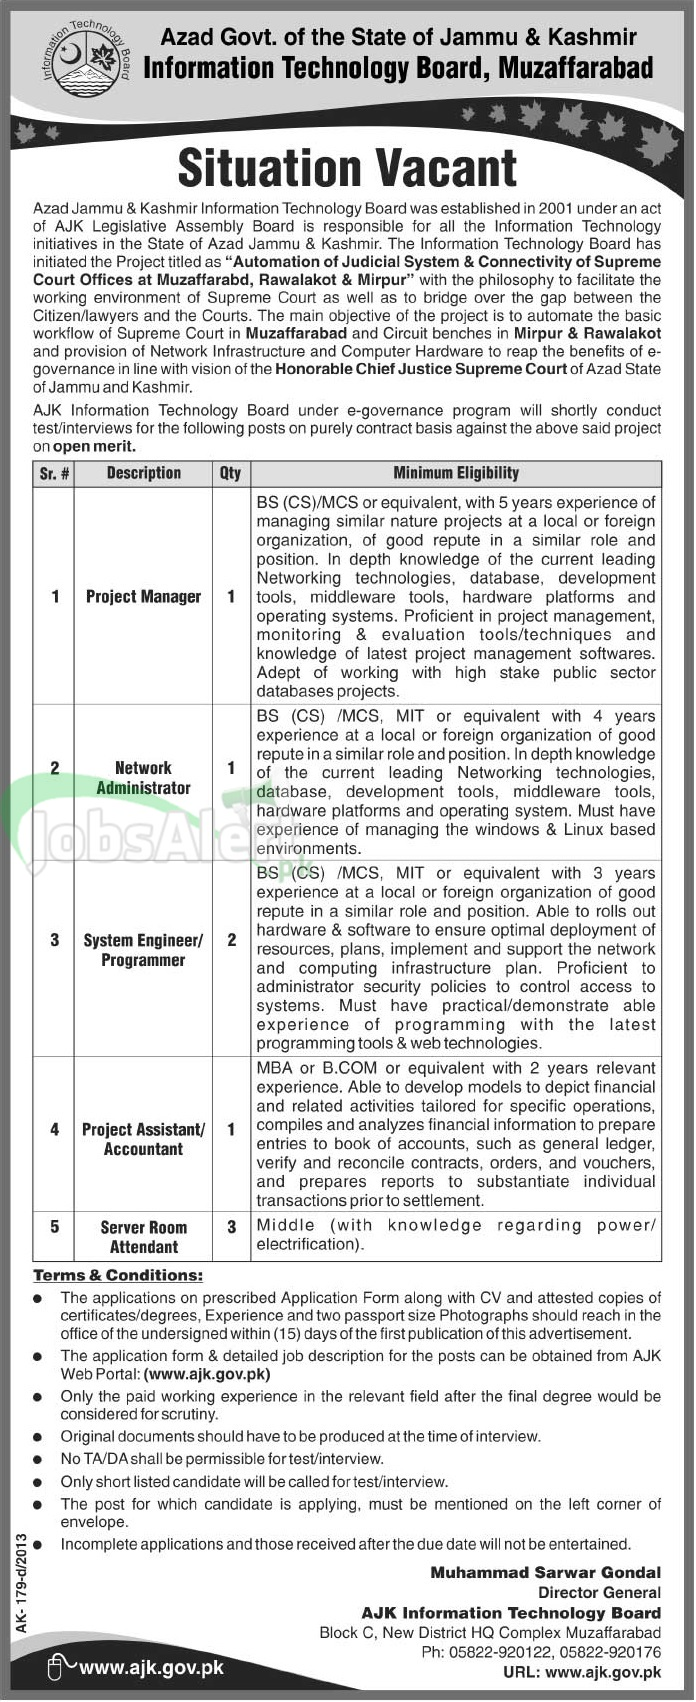 Govt. Jobs in AJK Information Technology Board, Muzaffarabad